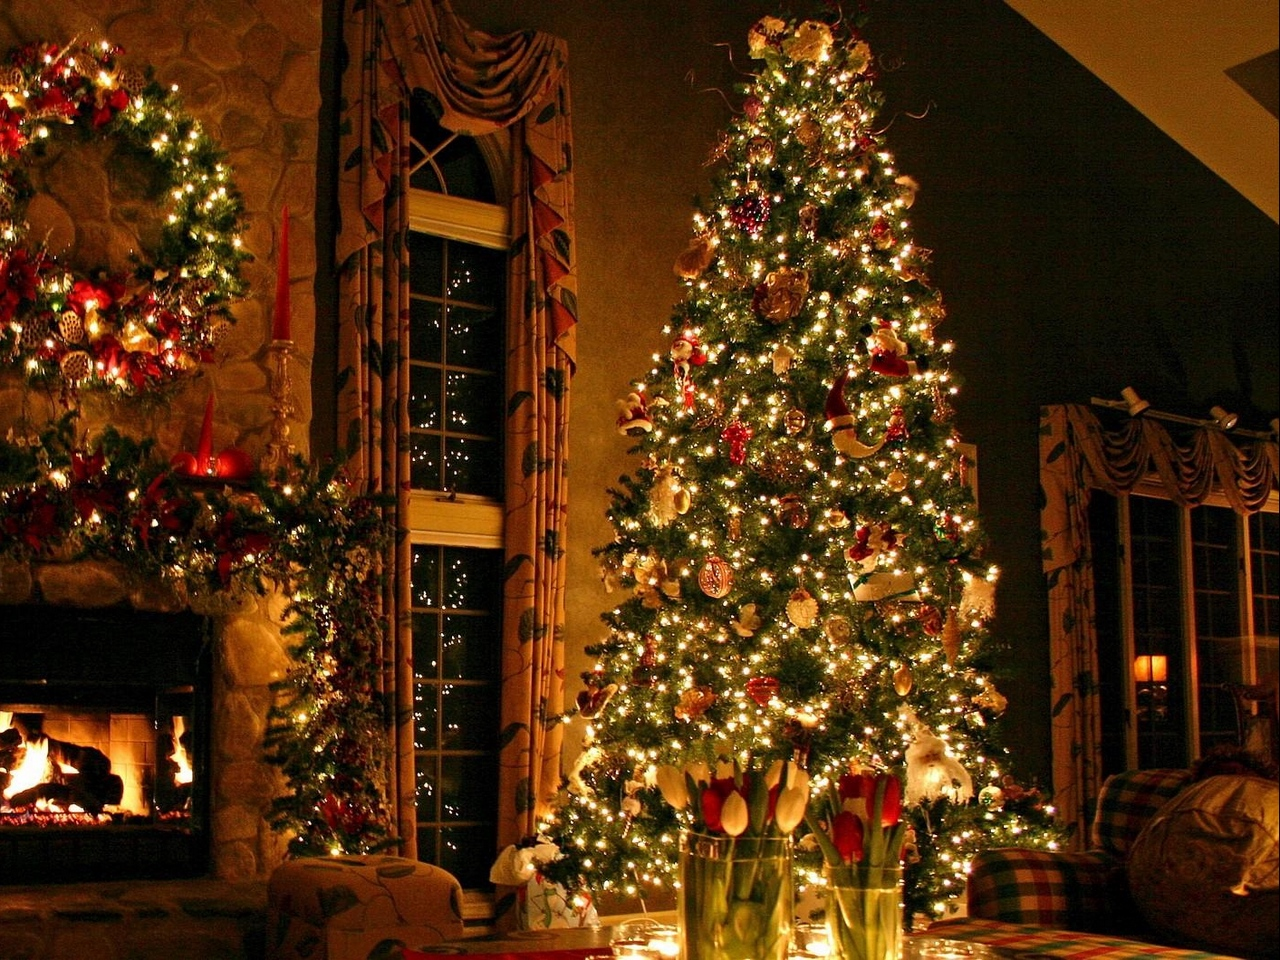 Download wallpaper 1280x960 christmas tree ornaments fireplace 1280x960